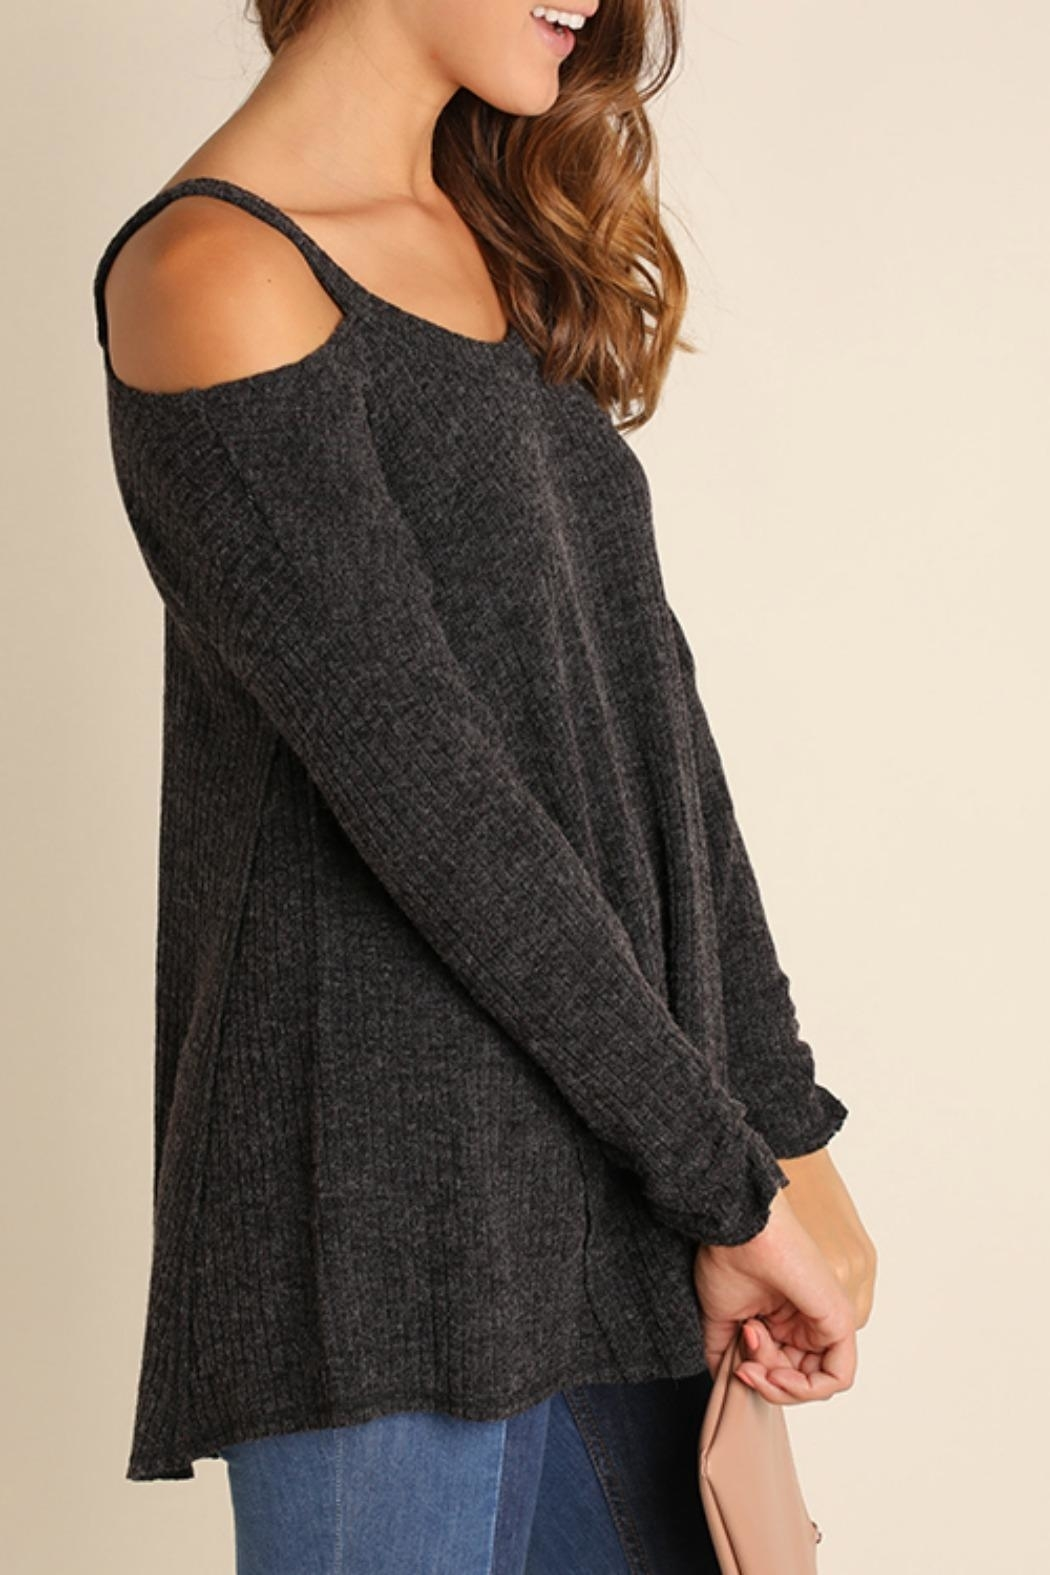 Umgee USA Open Shoulder Tunic Swearter - Side Cropped Image